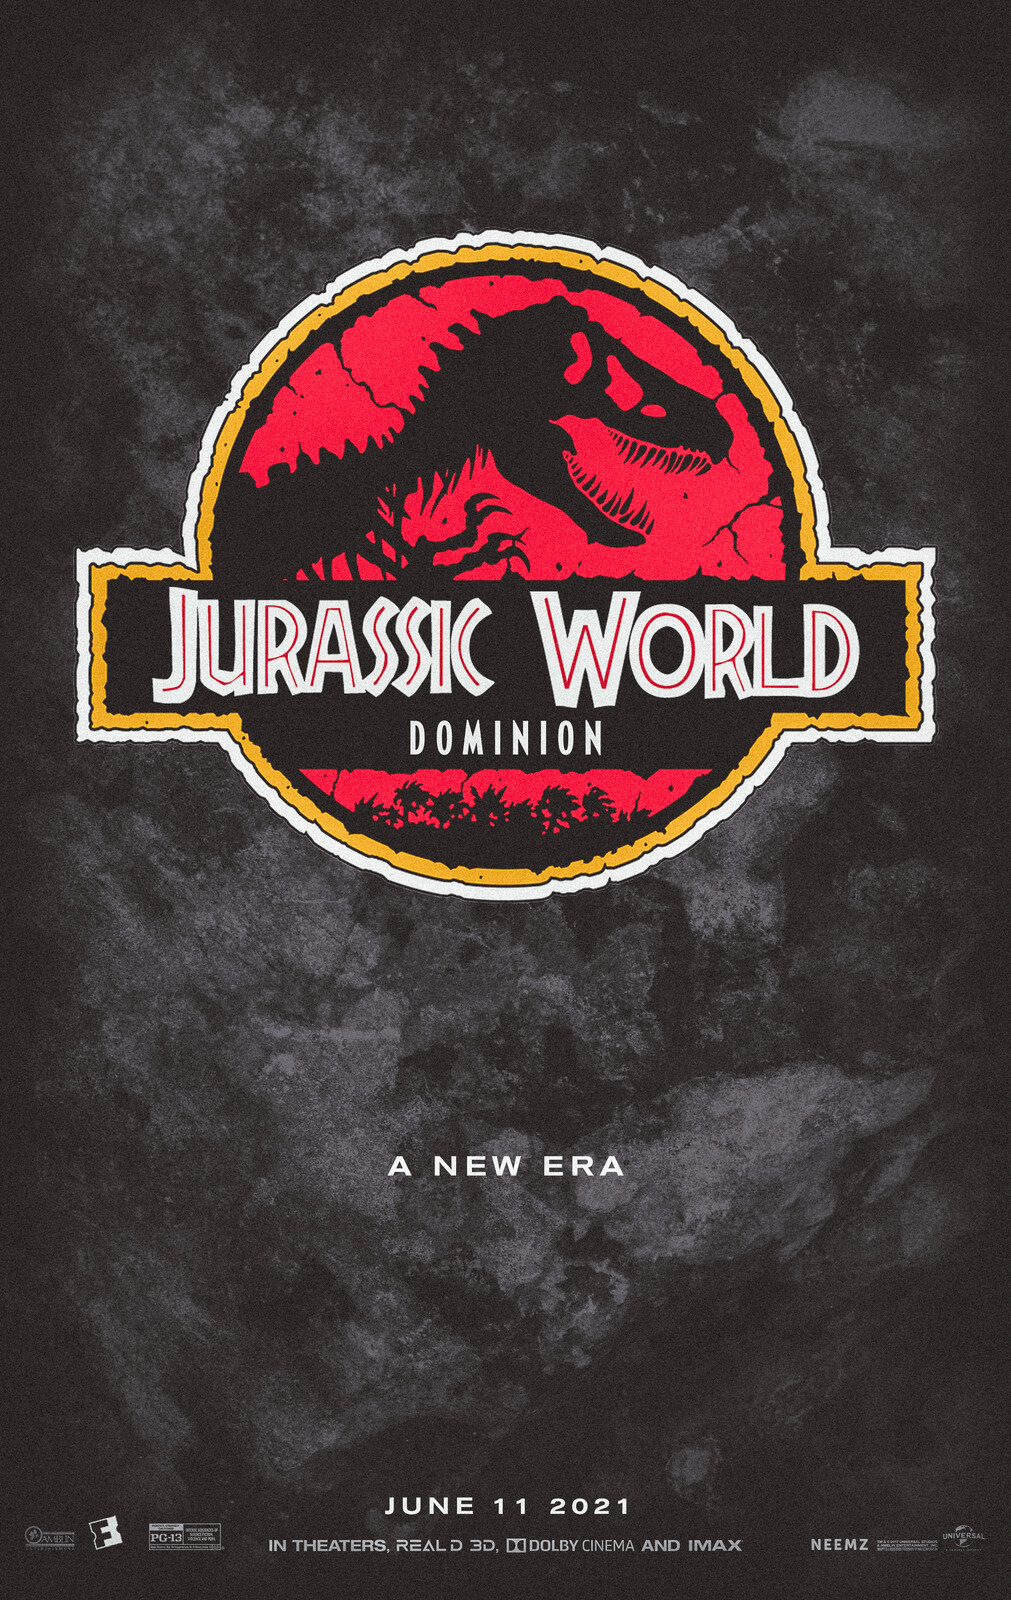 Jurassic World Dominion Movie Poster - Classic Look